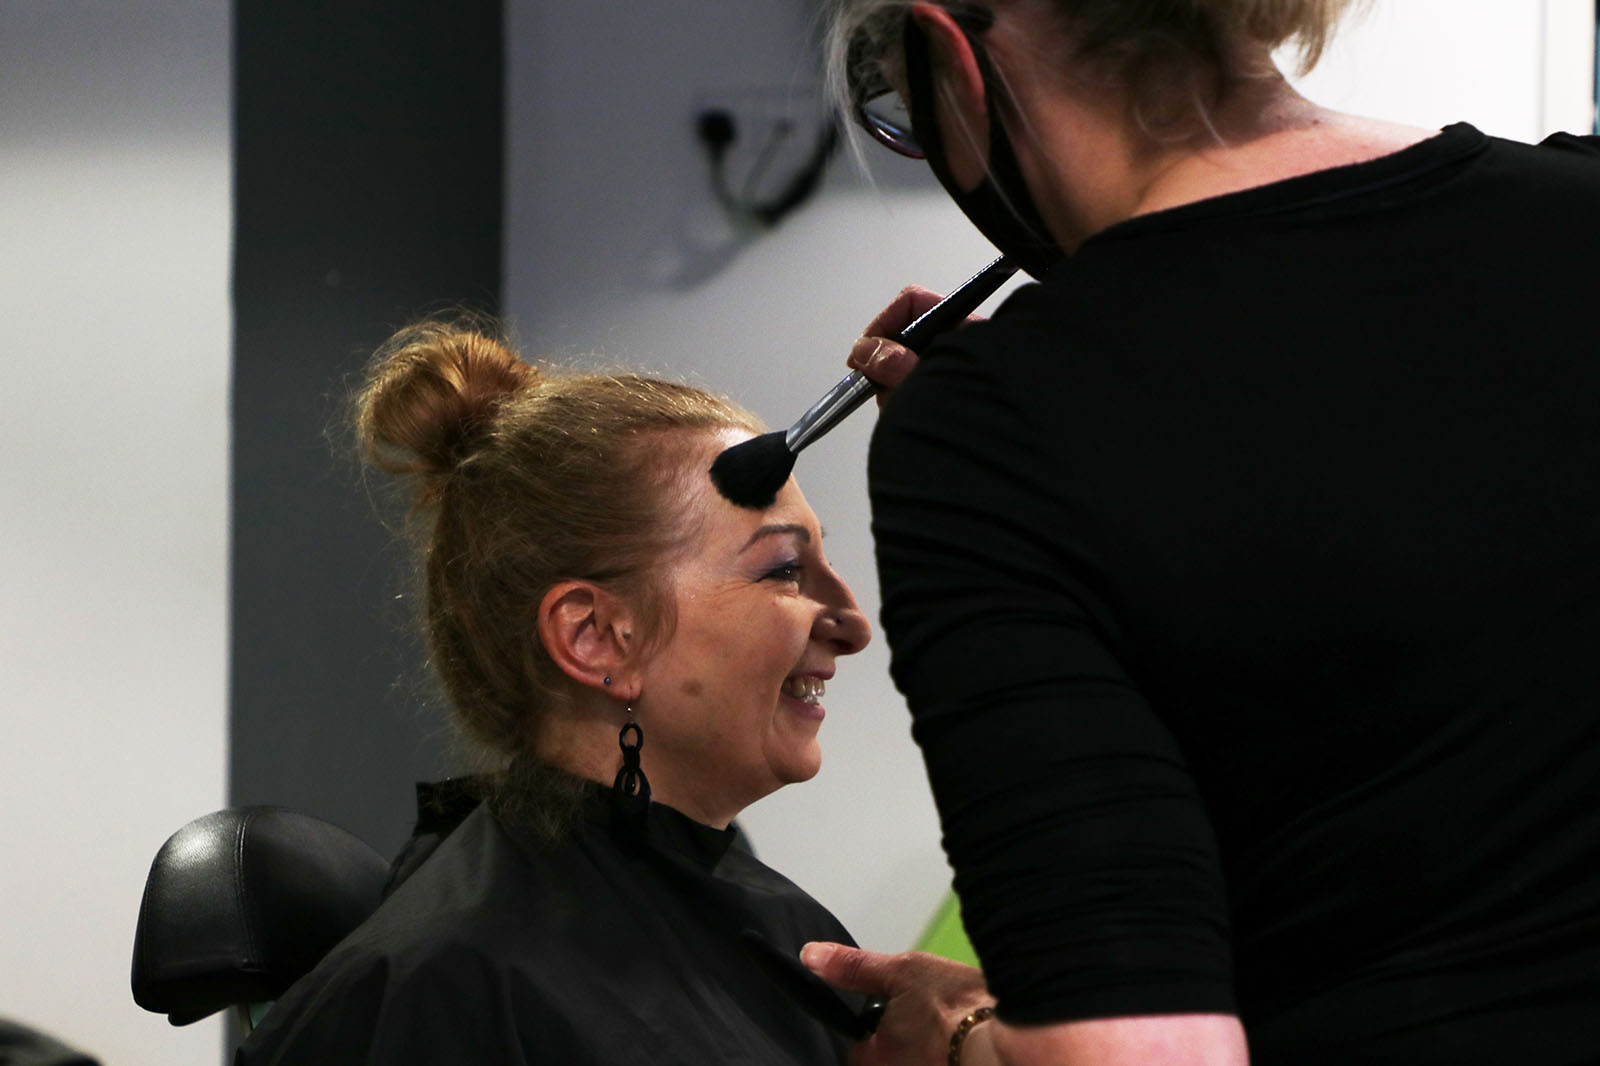 CEO of Inspire North Ruth Kettle in the hair and makeup chair at Best Companies Live